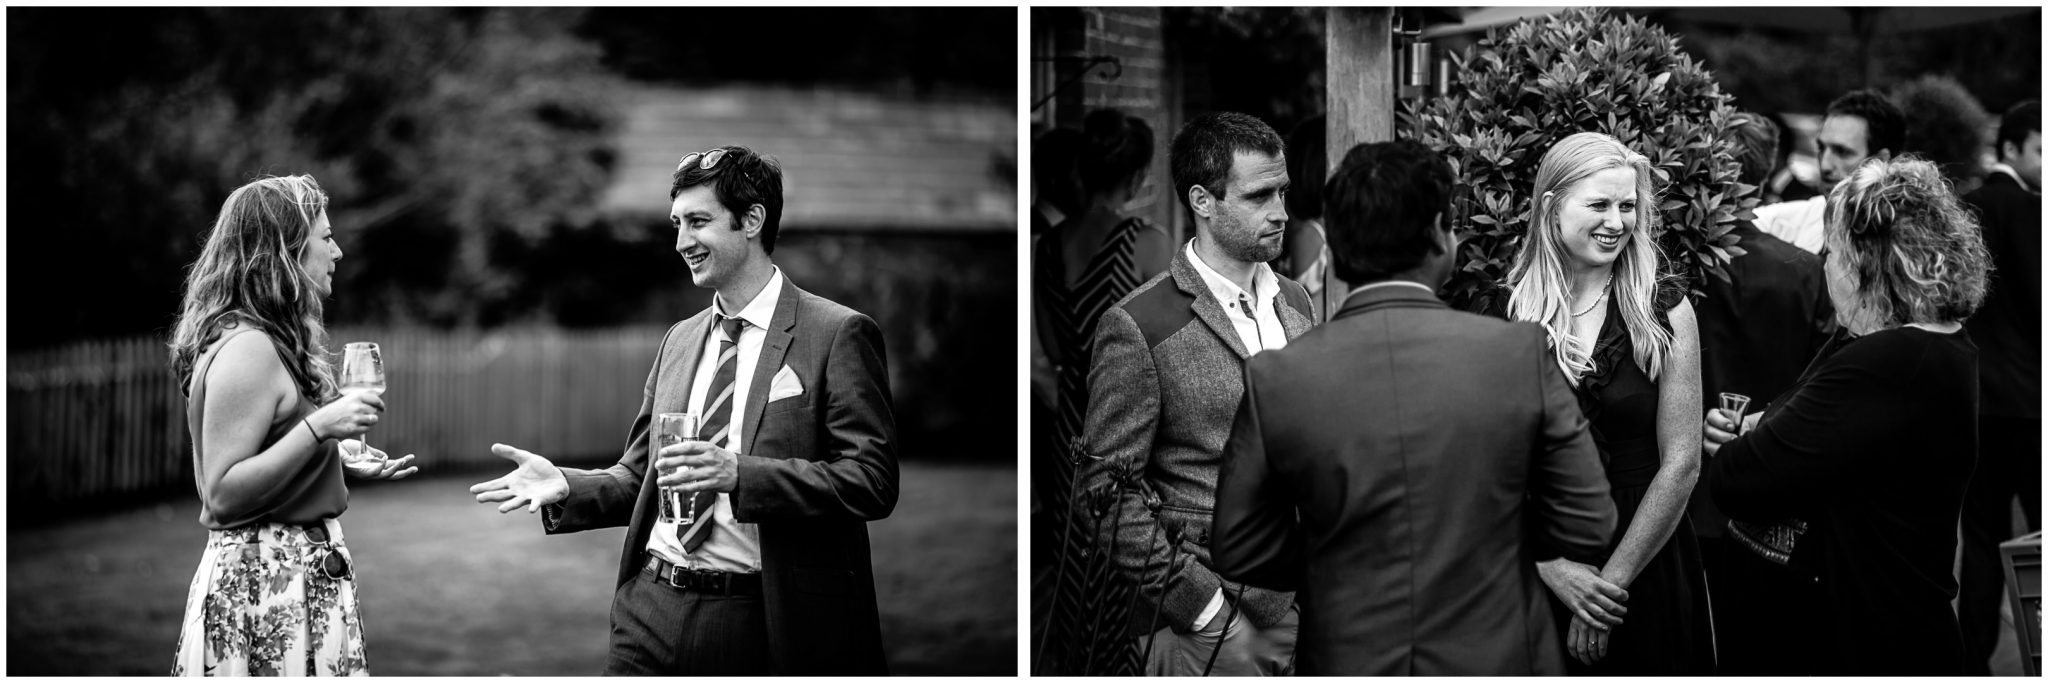 Sopley Mill Summer wedding black and white documentary photos of guests